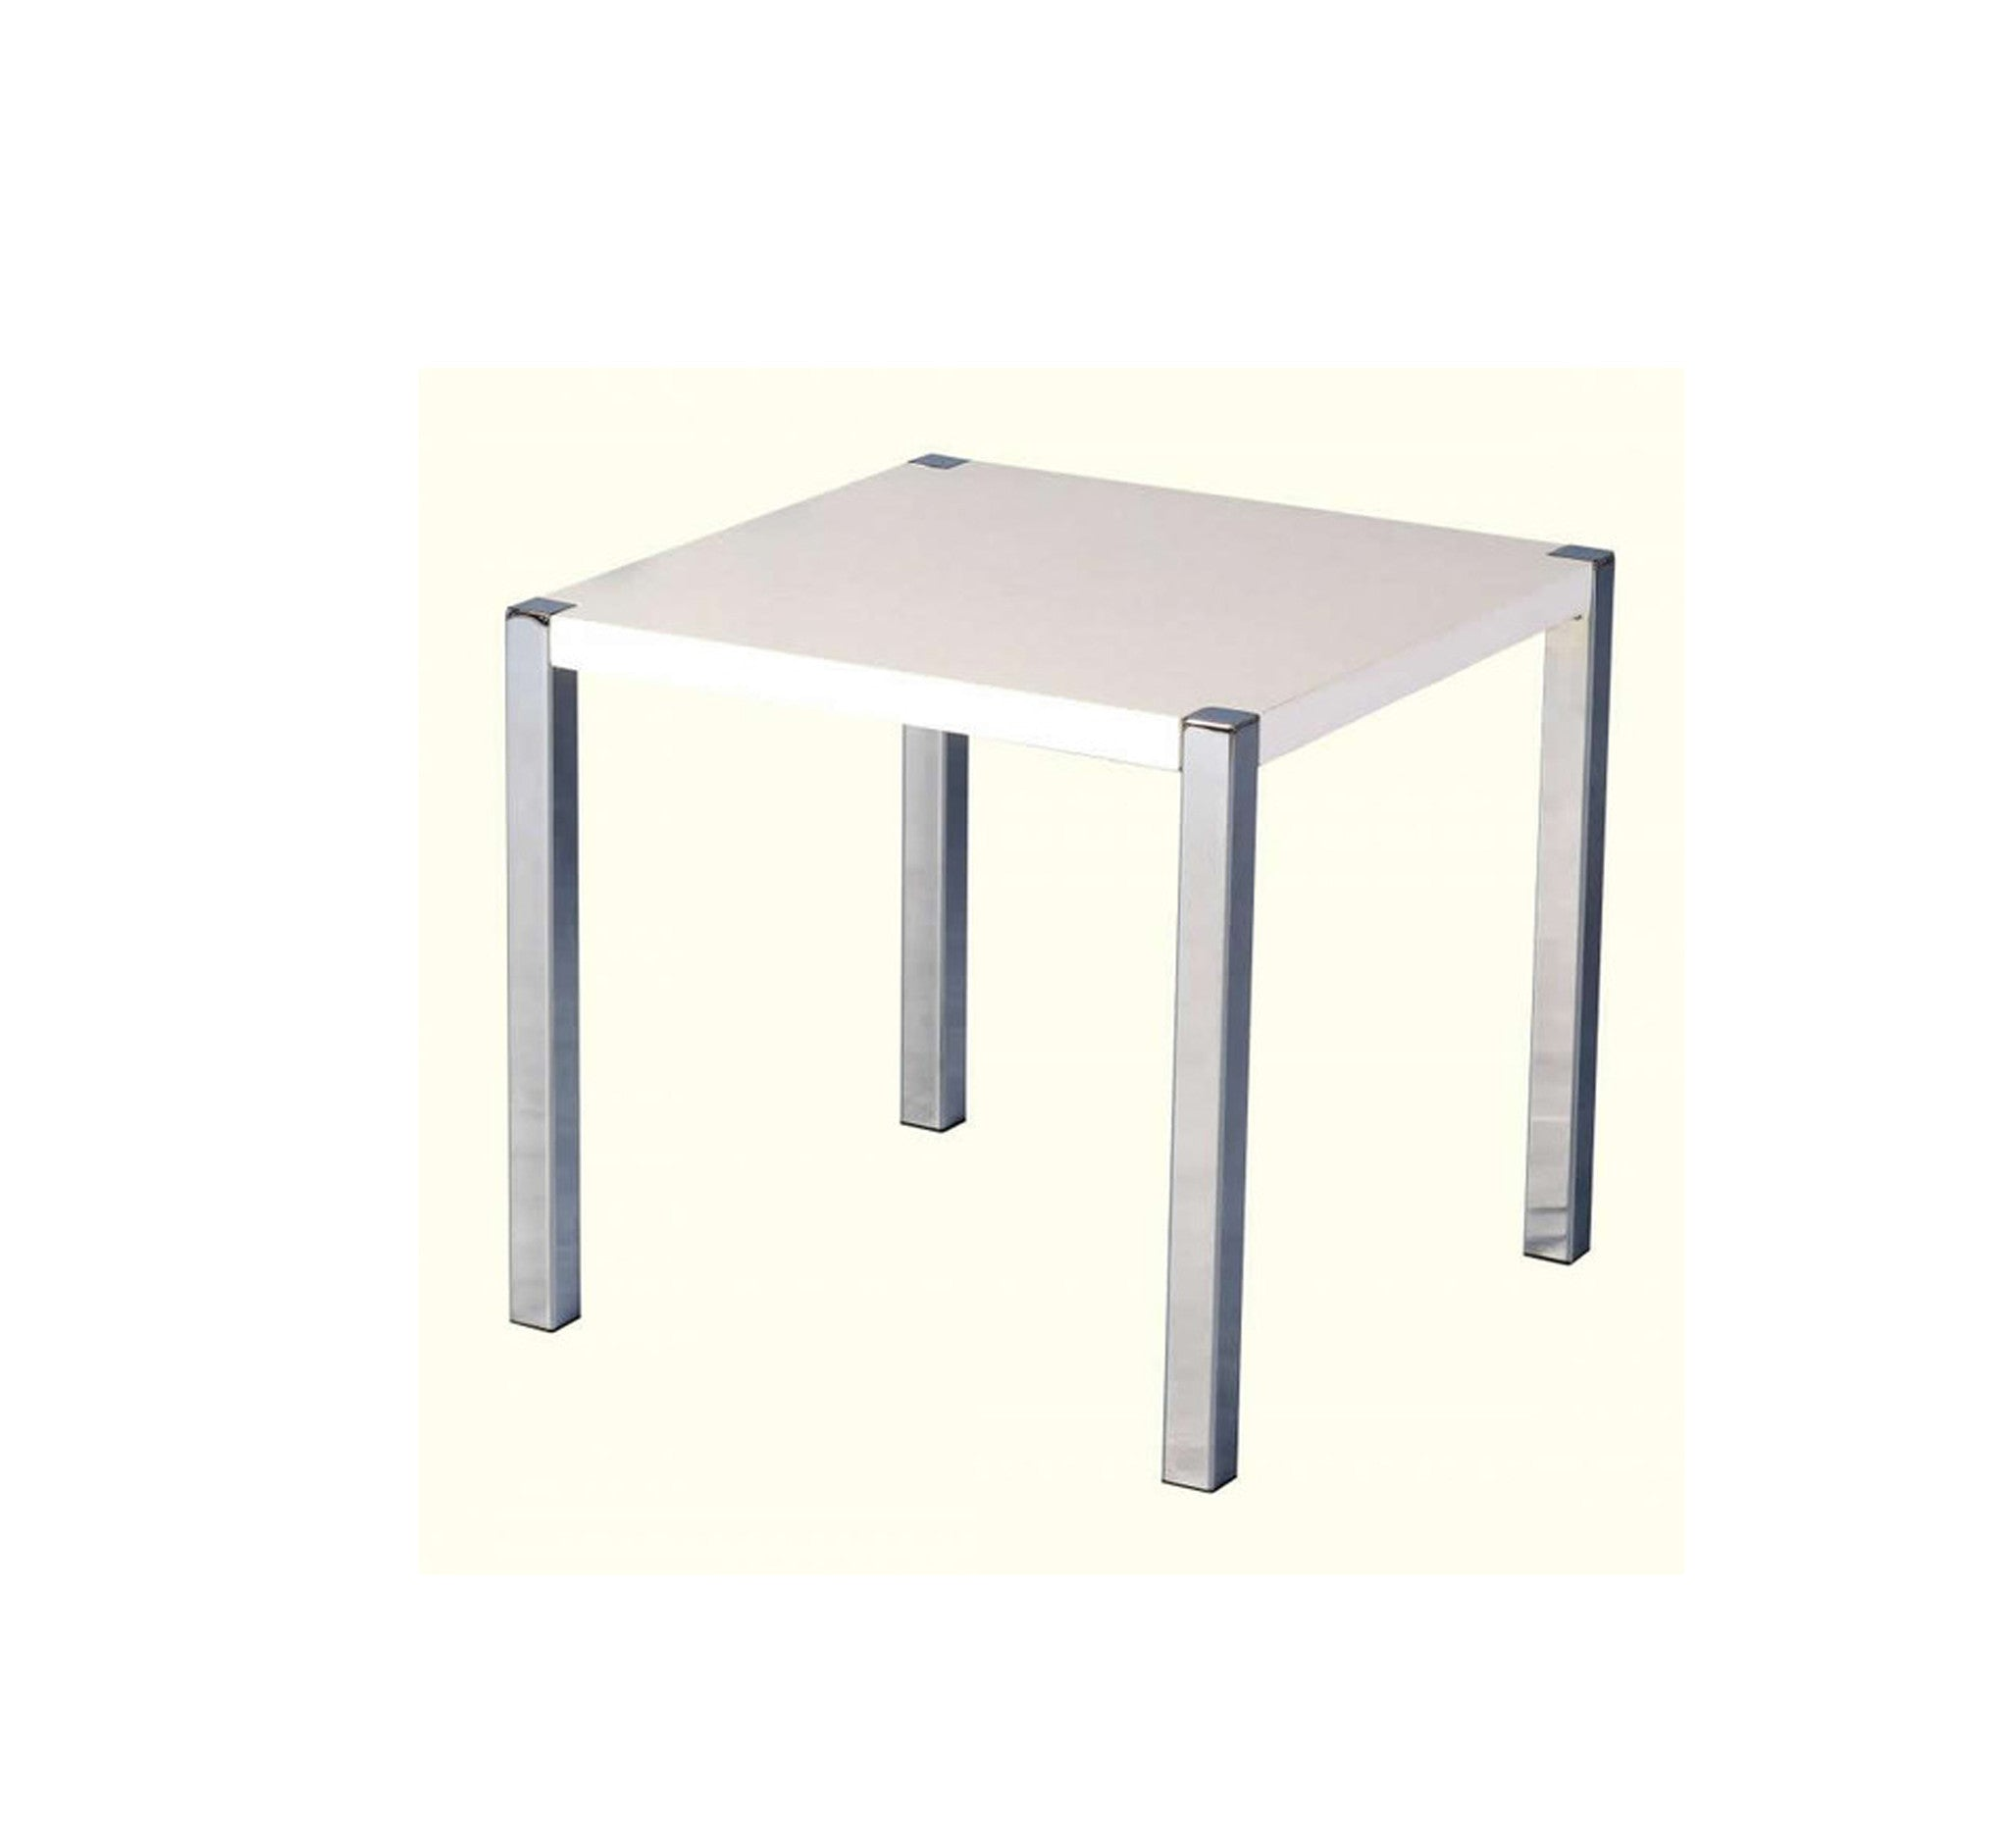 Lamp tables white images coffee table design ideas buy side coffee tables online ahoc ltd charisma lamp table white glosschrome ahoc ltd geotapseo images geotapseo Image collections